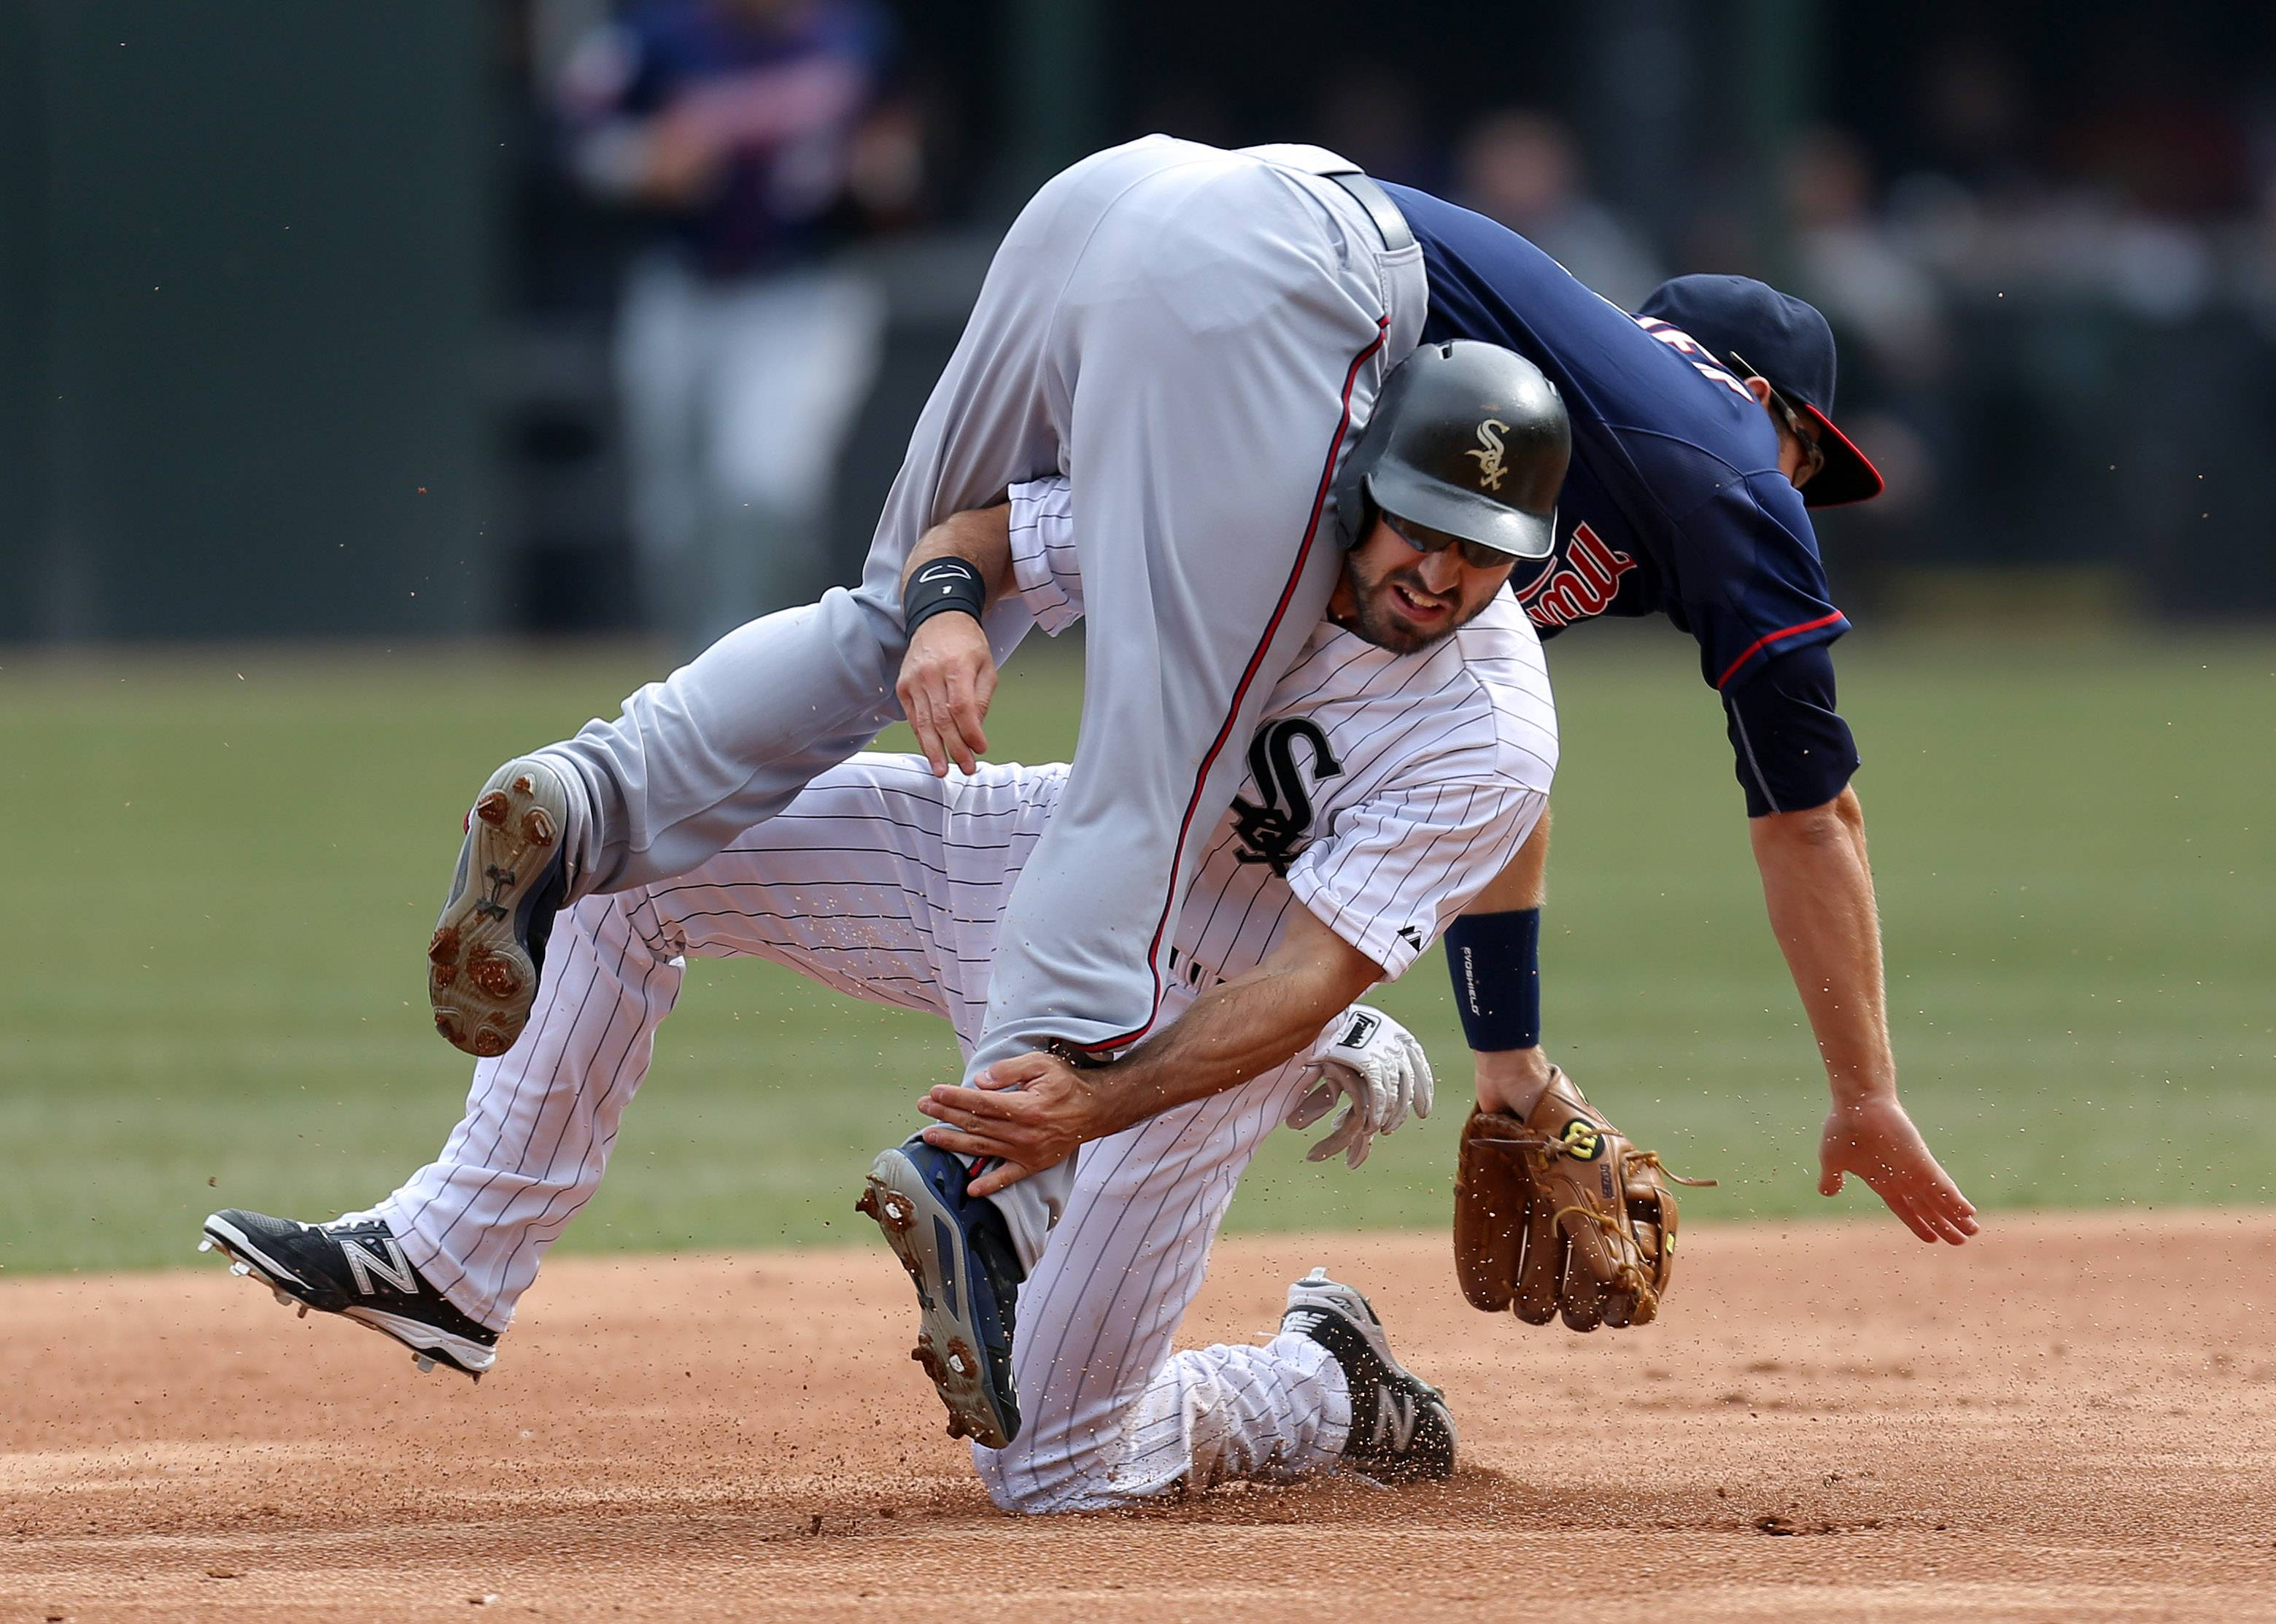 Chicago White Sox left fielder Adam Eaton gets tangled up with Minnesota Twins second baseman Brian Dozier.